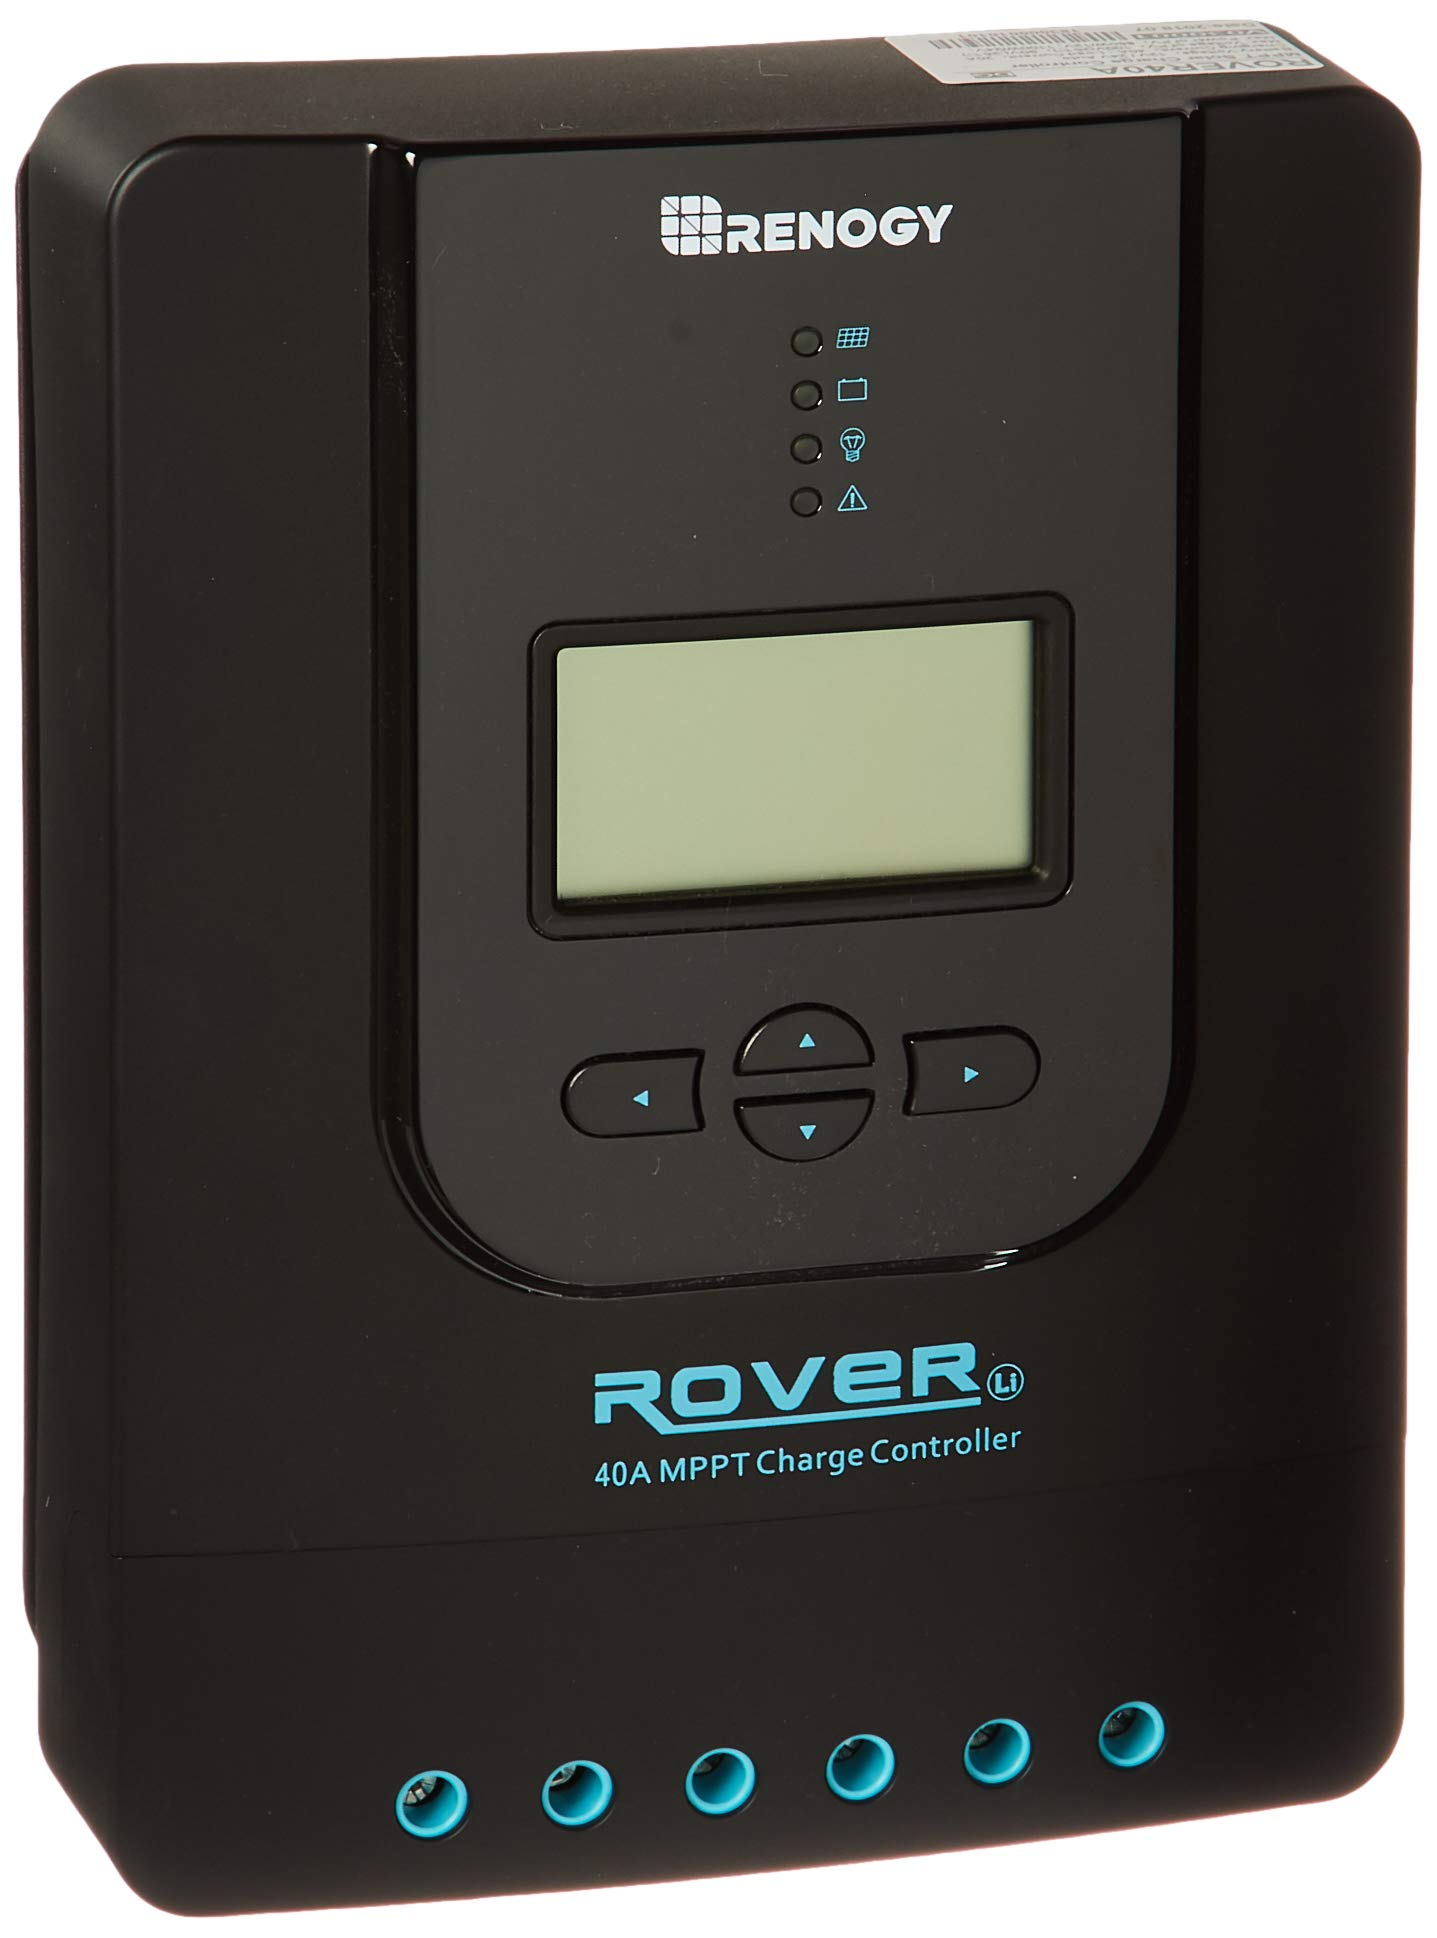 Renogy Rover 40 Amp MPPT Solar Charge Controller Battery Regulator with LCD Display by Renogy